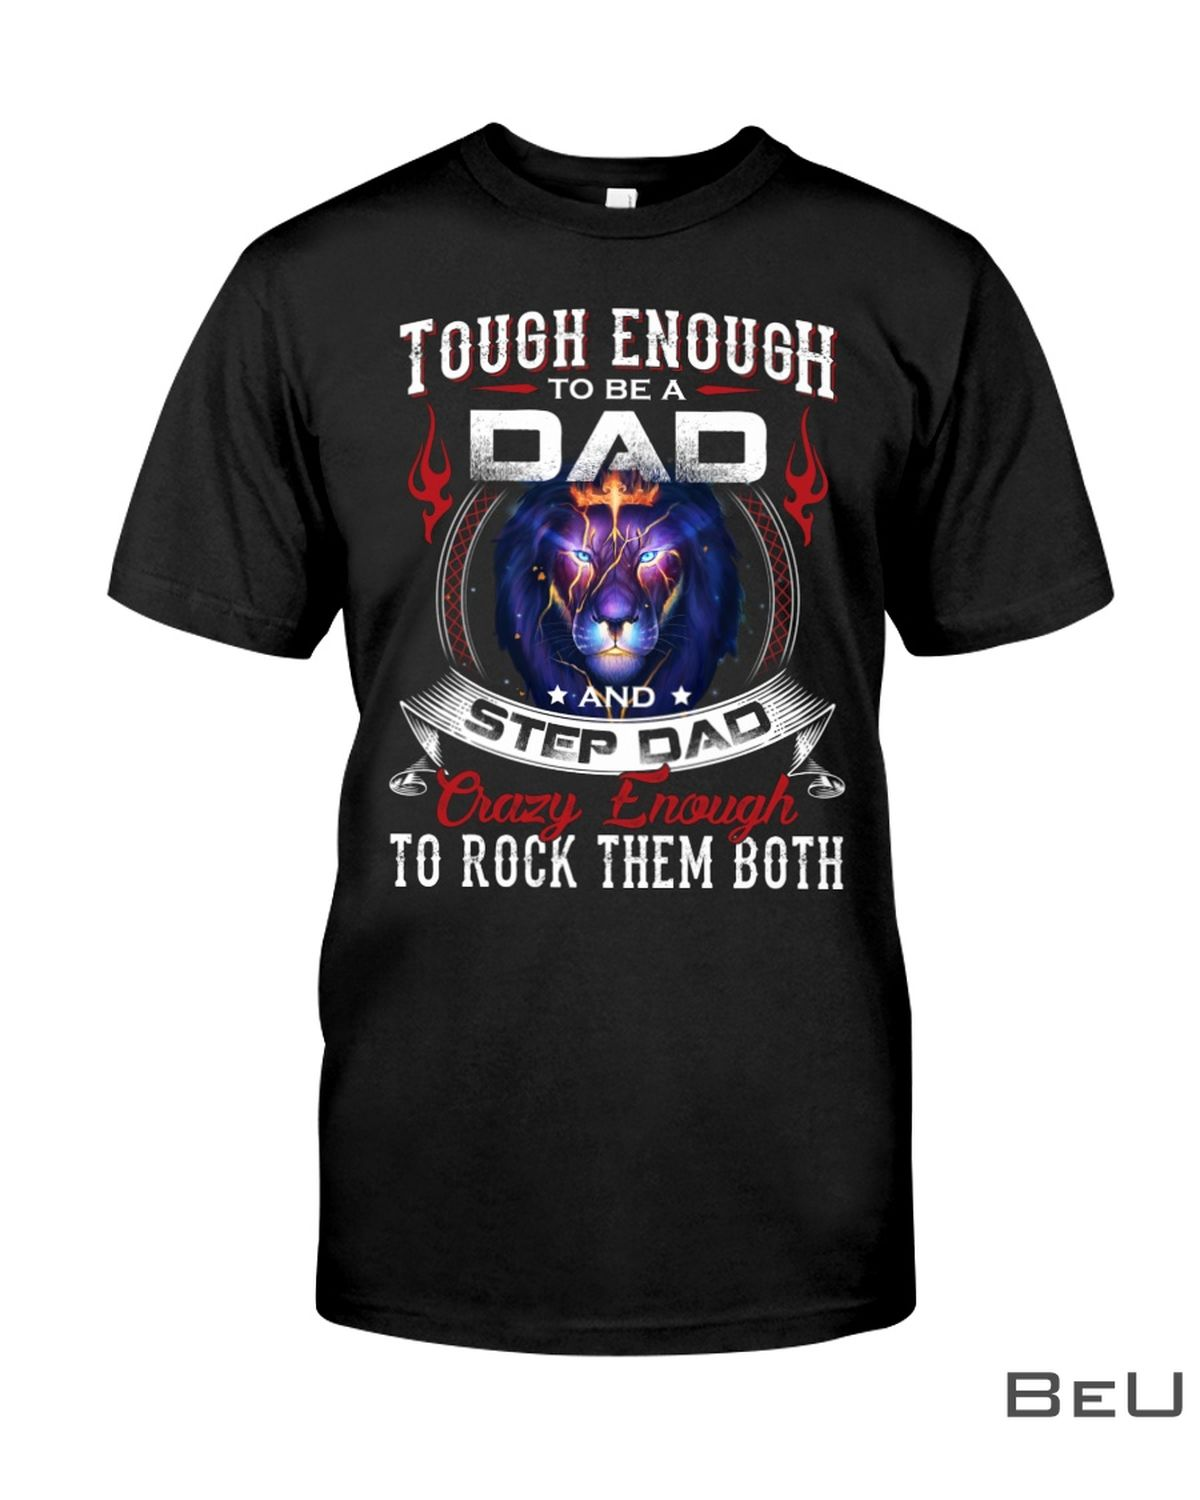 Tough Enough To Be A Dad And Step Dad Crazy Enough To Rock Them Both Shirt, hoodie, tank top